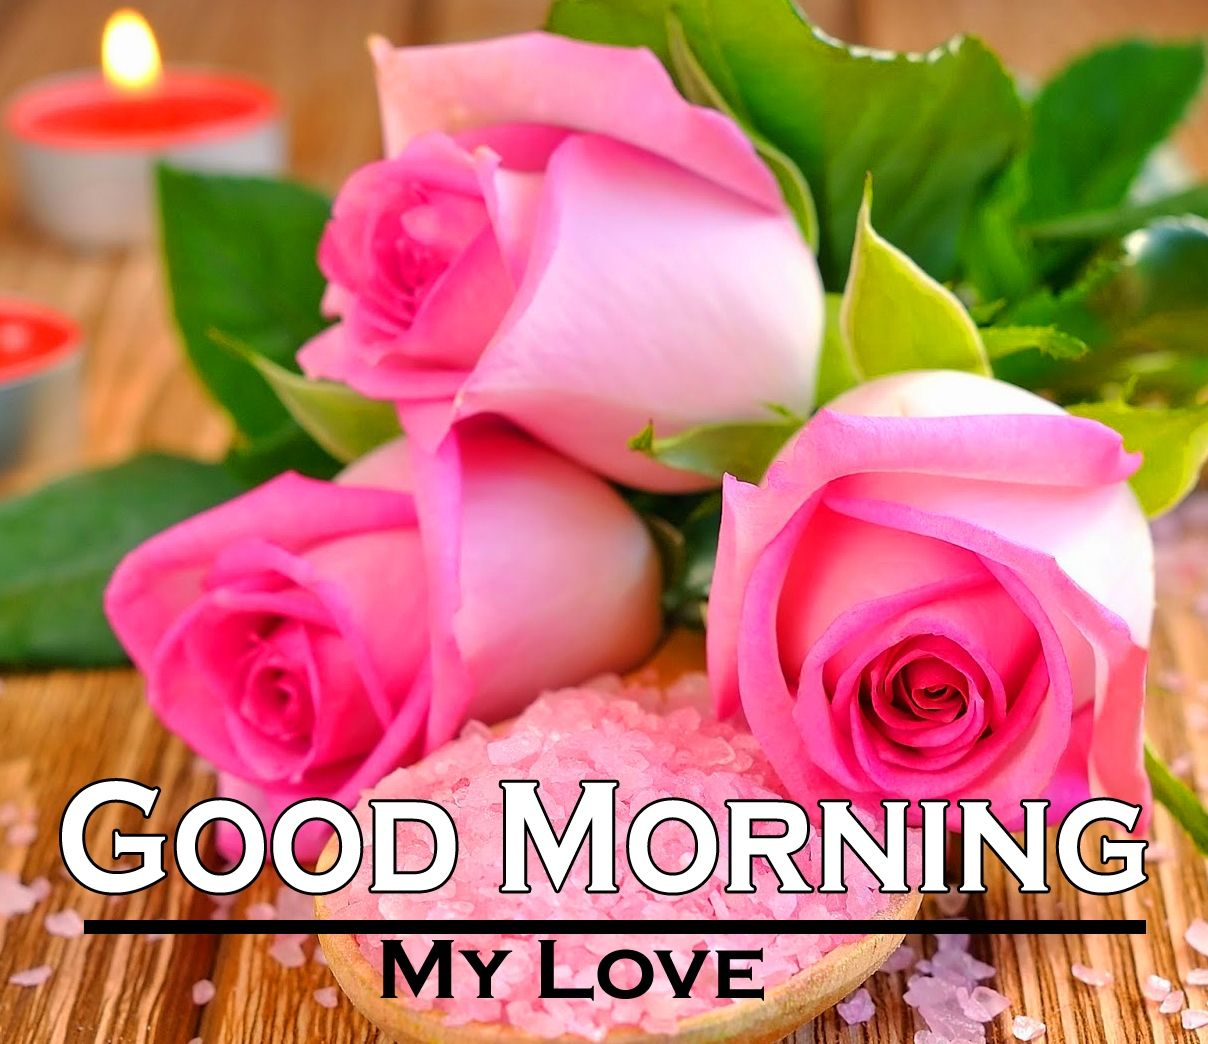 Good Morning Images 15 Beautiful Pink Flowers Good Morning Beautiful Images Rose Good morning pink flowers hd wallpaper